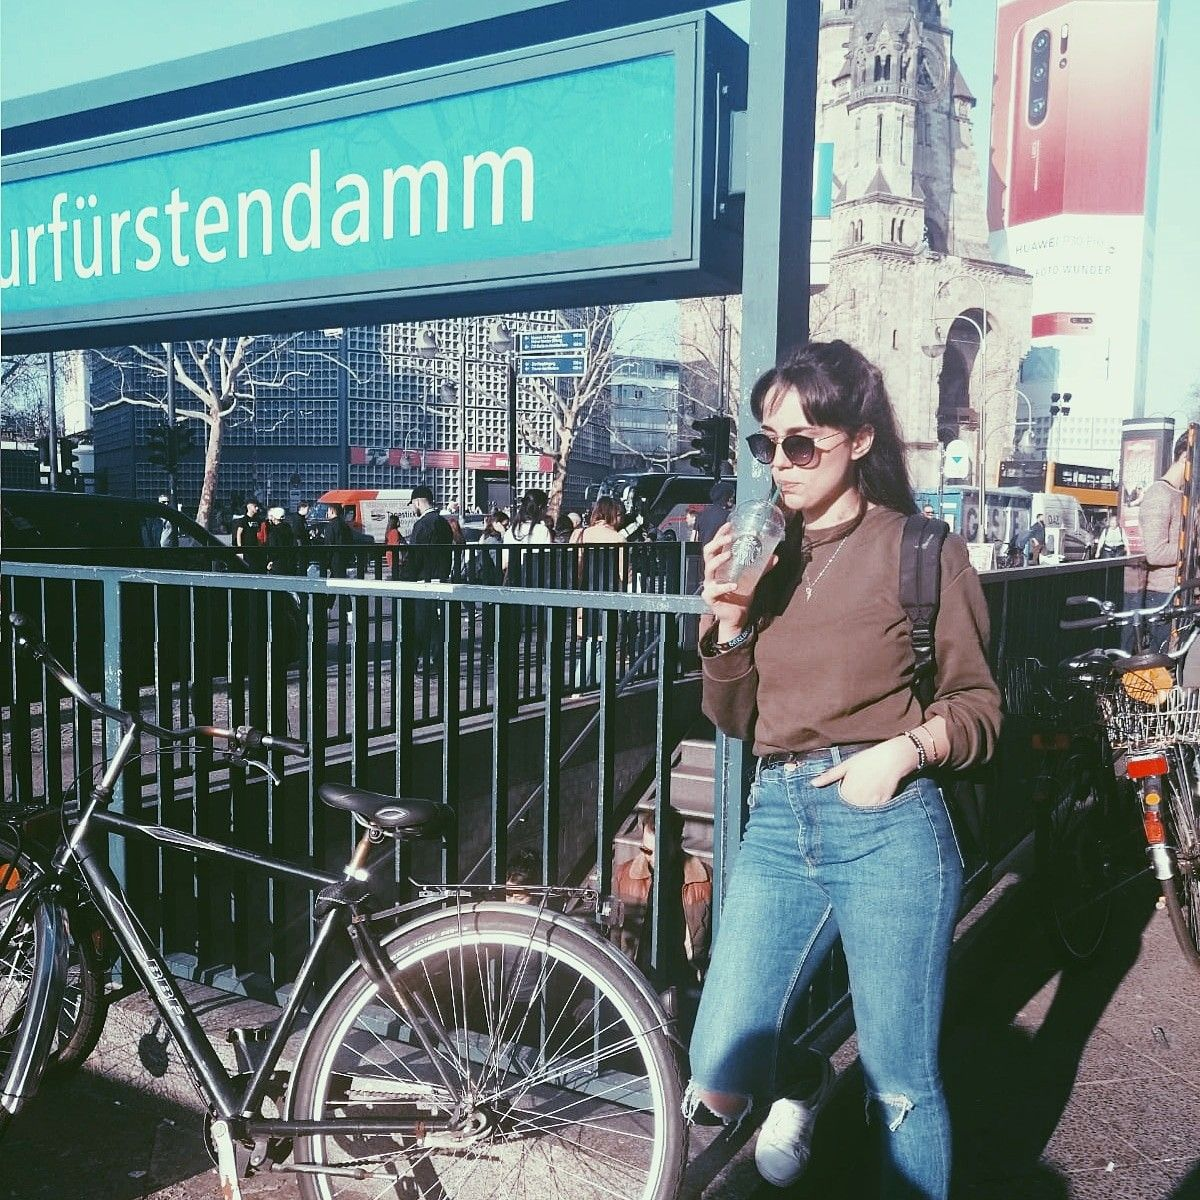 BERLIN🇩🇪 #travel #vsco #p5effect #berlin #italiangirl #drinking #tumblrgirl #bestmoment